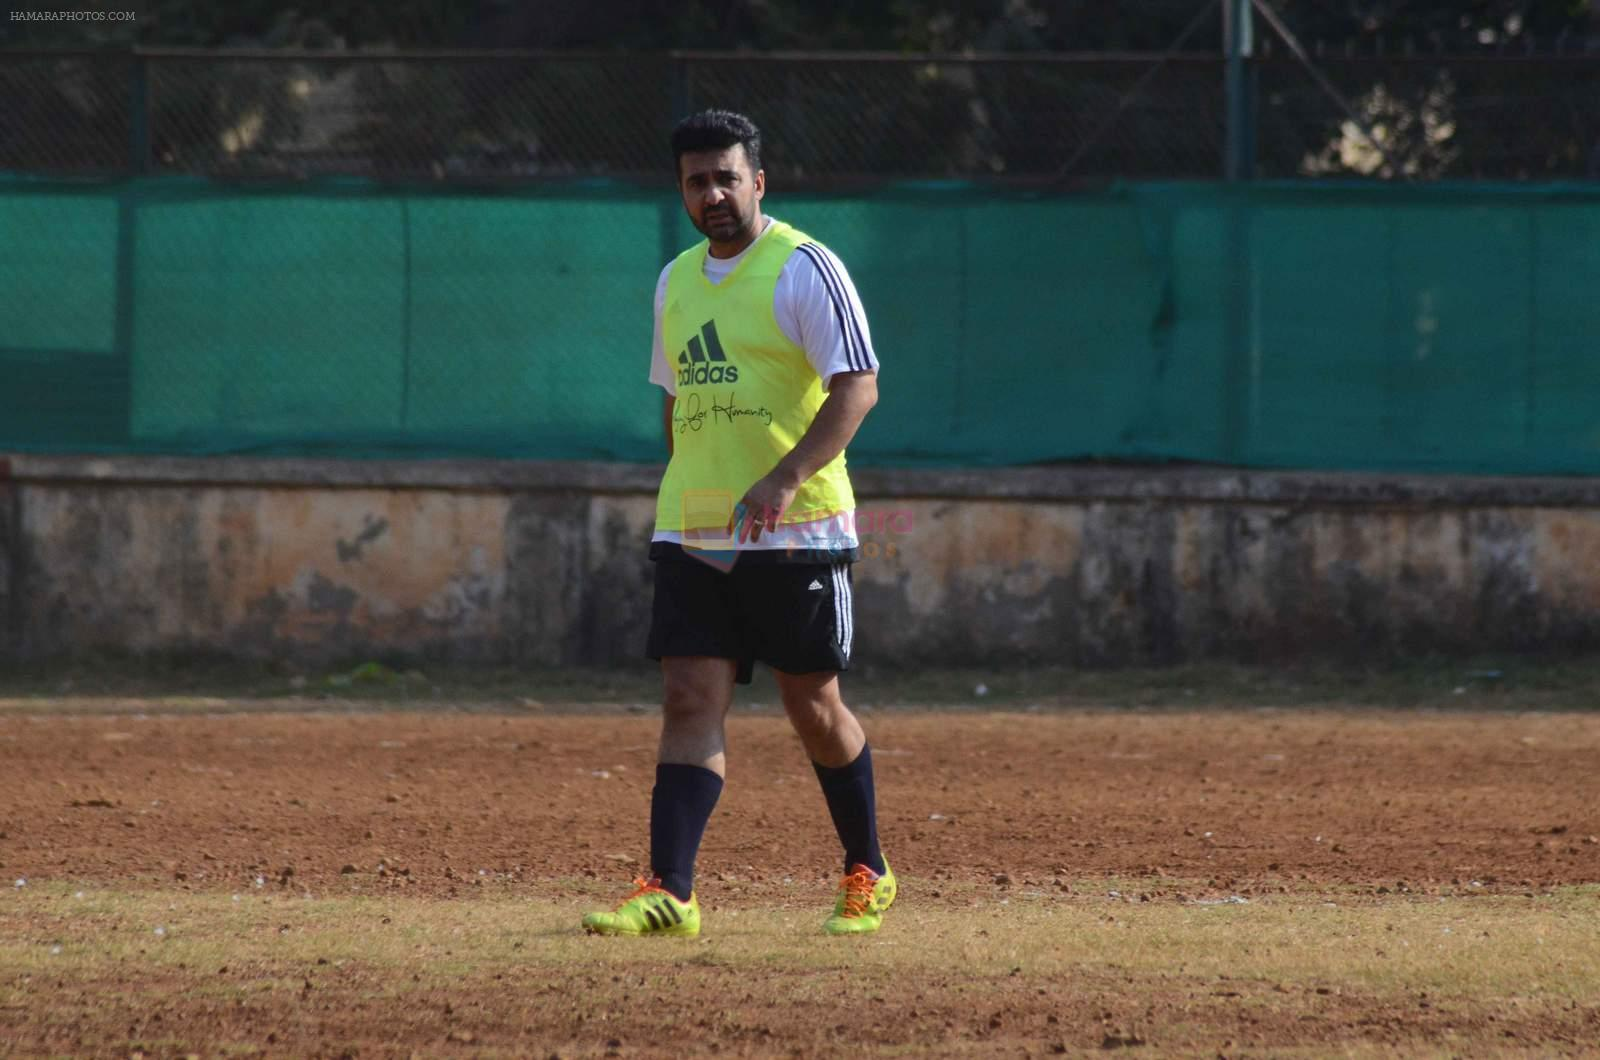 Raj Kundra snapped in action at soccer match on 18th Jan 2016